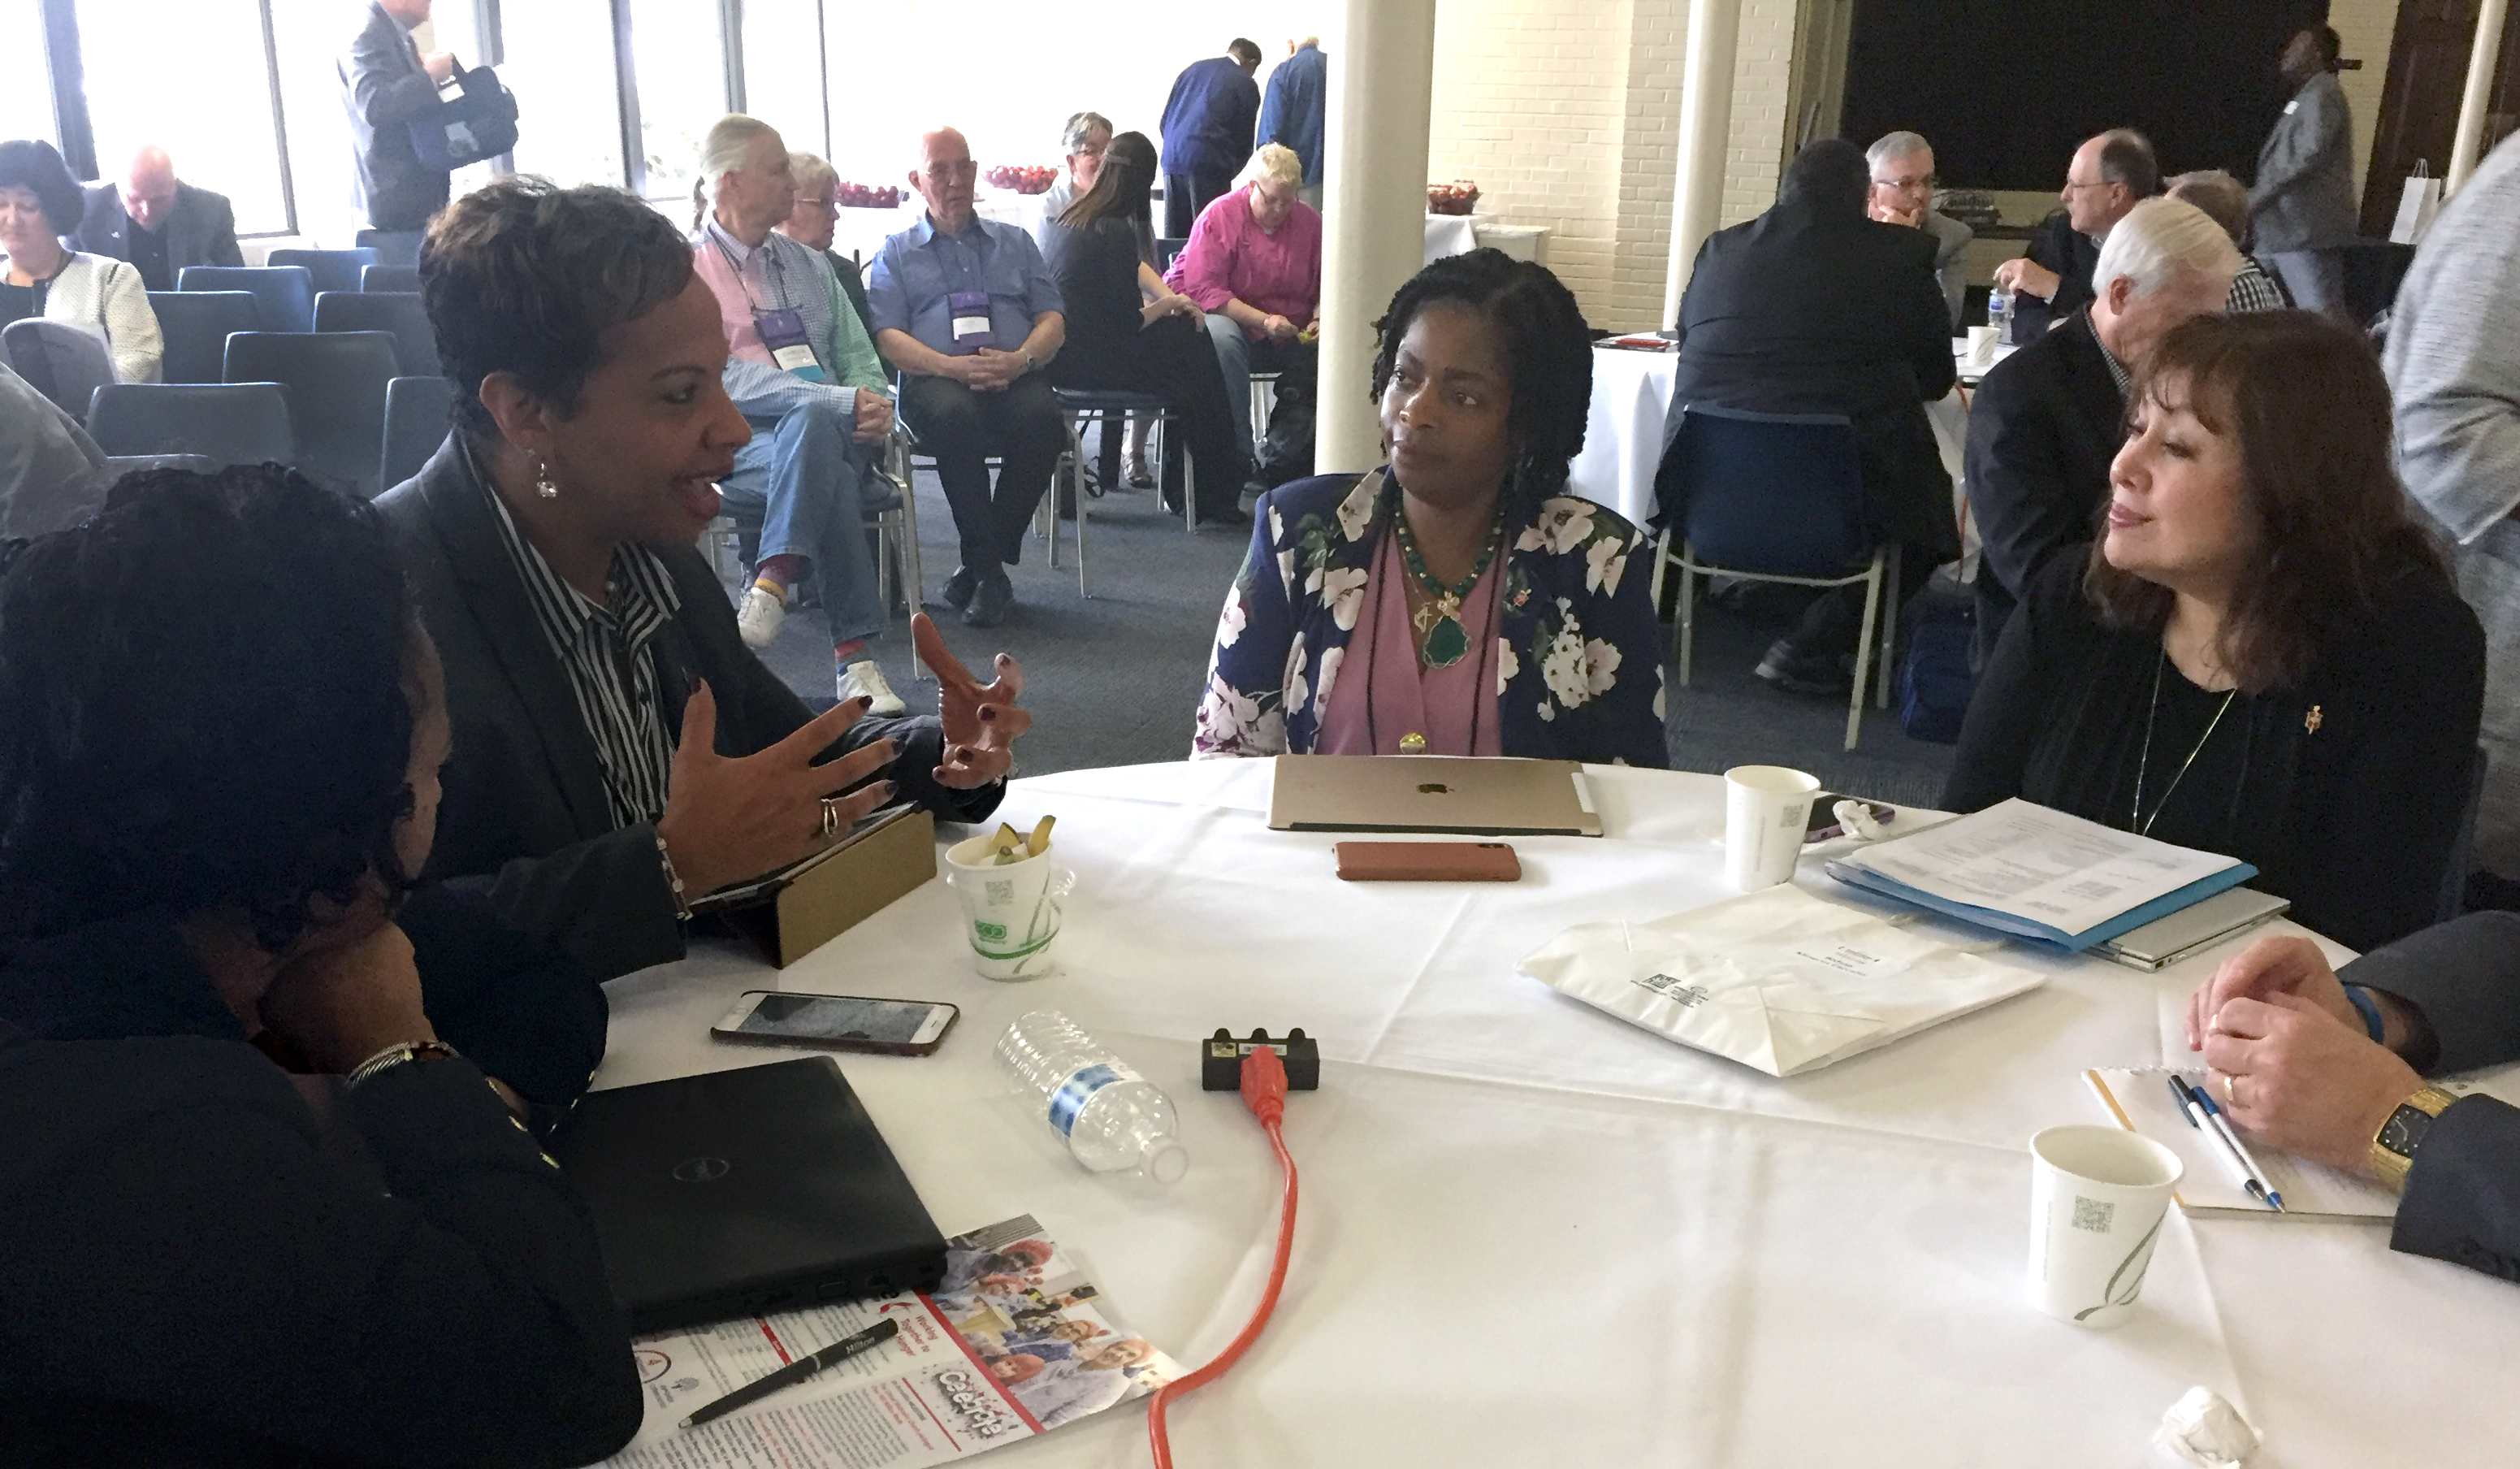 Bishops gather in small groups to discuss what scriptural imagination means in this uncertain season in the church. From left are Bishops Sharma Lewis, Tracy Smith Malone (speaking), Cynthia Moore-Koikoi and Minerva Carcaño. Photo by Heather Hahn, UMNS.